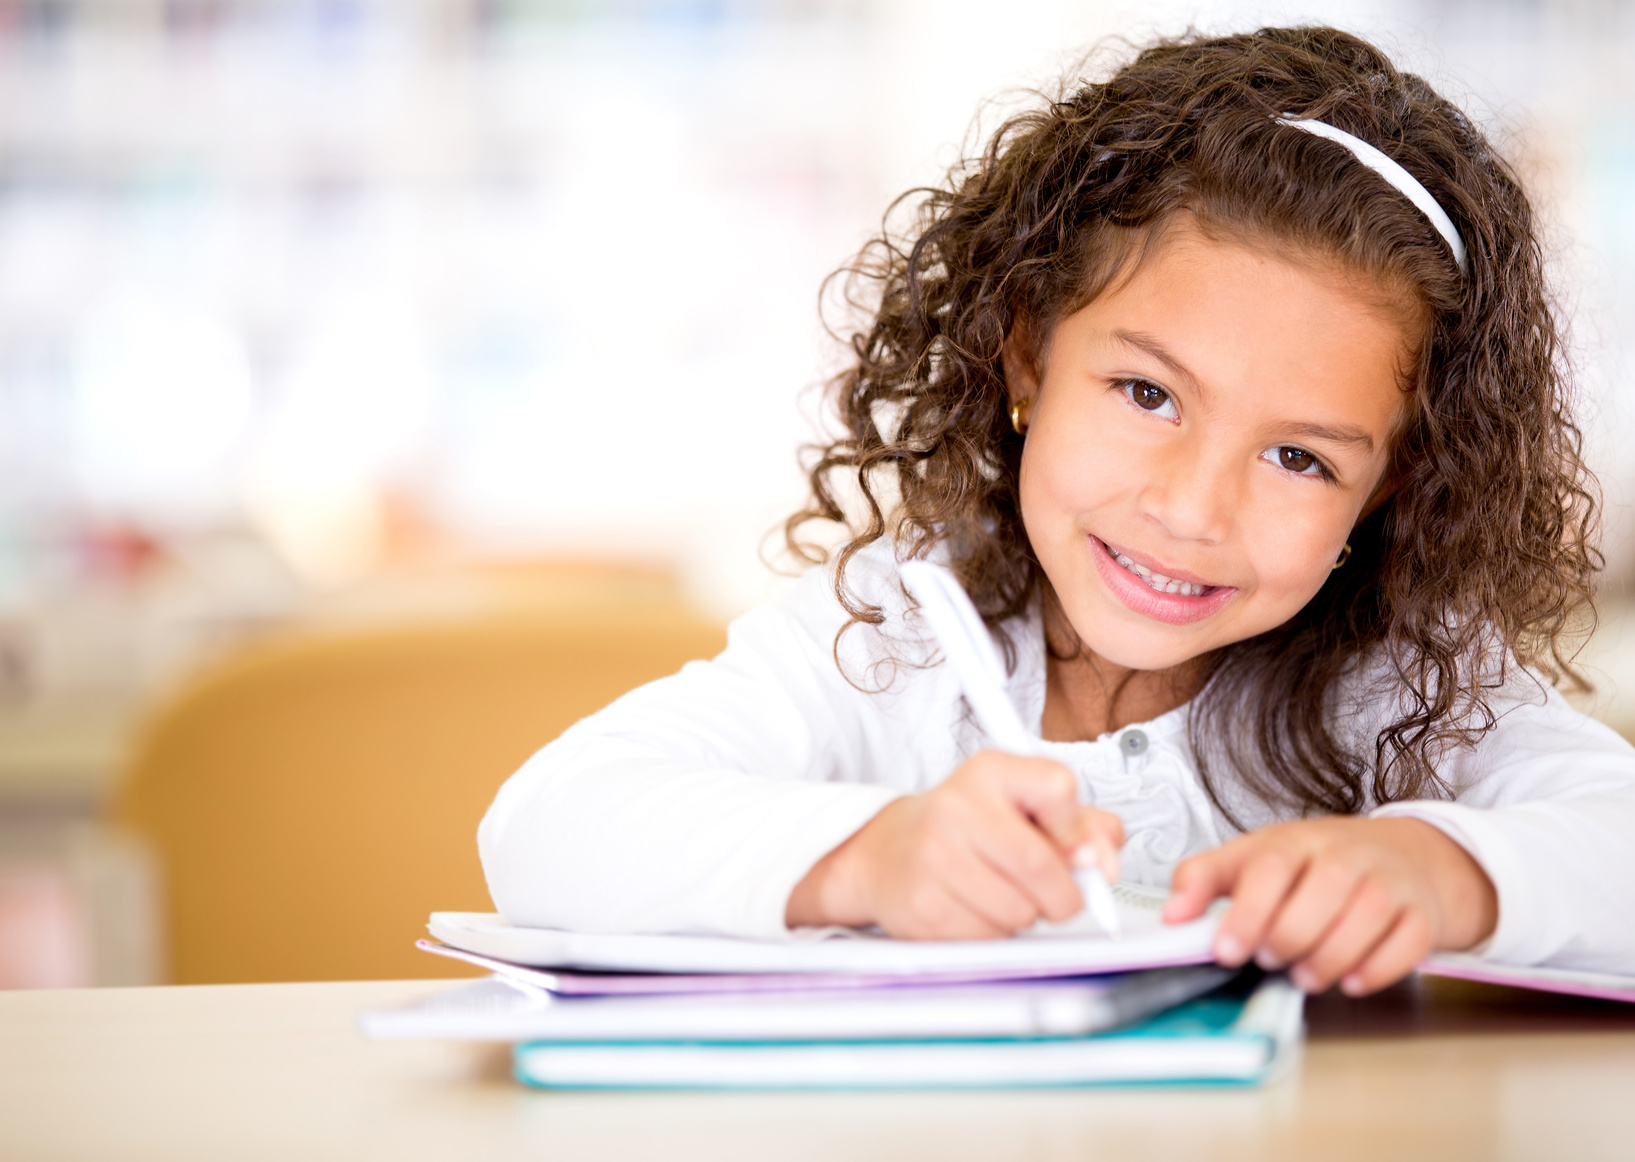 studying childrens friendships in bigelow and la However, in a groundbreaking study, bigelow and la gaipa (1975) empirically demonstrated developmental changes in children's perceptions of their friendships.